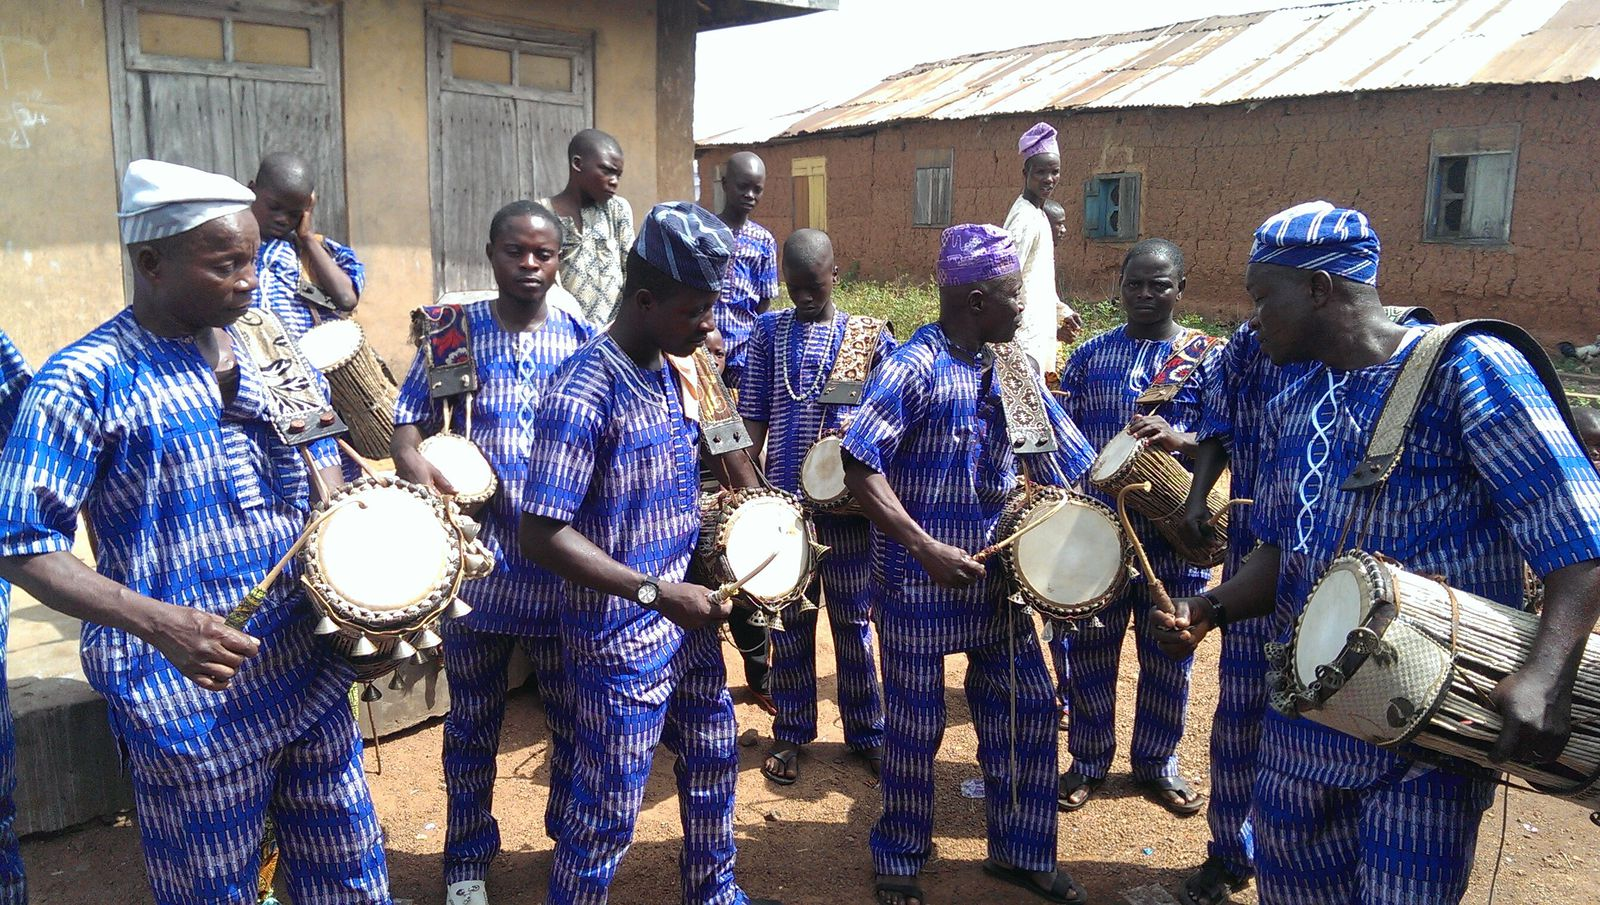 How Does the West African Talking Drum Accurately Mimic Human Speech?